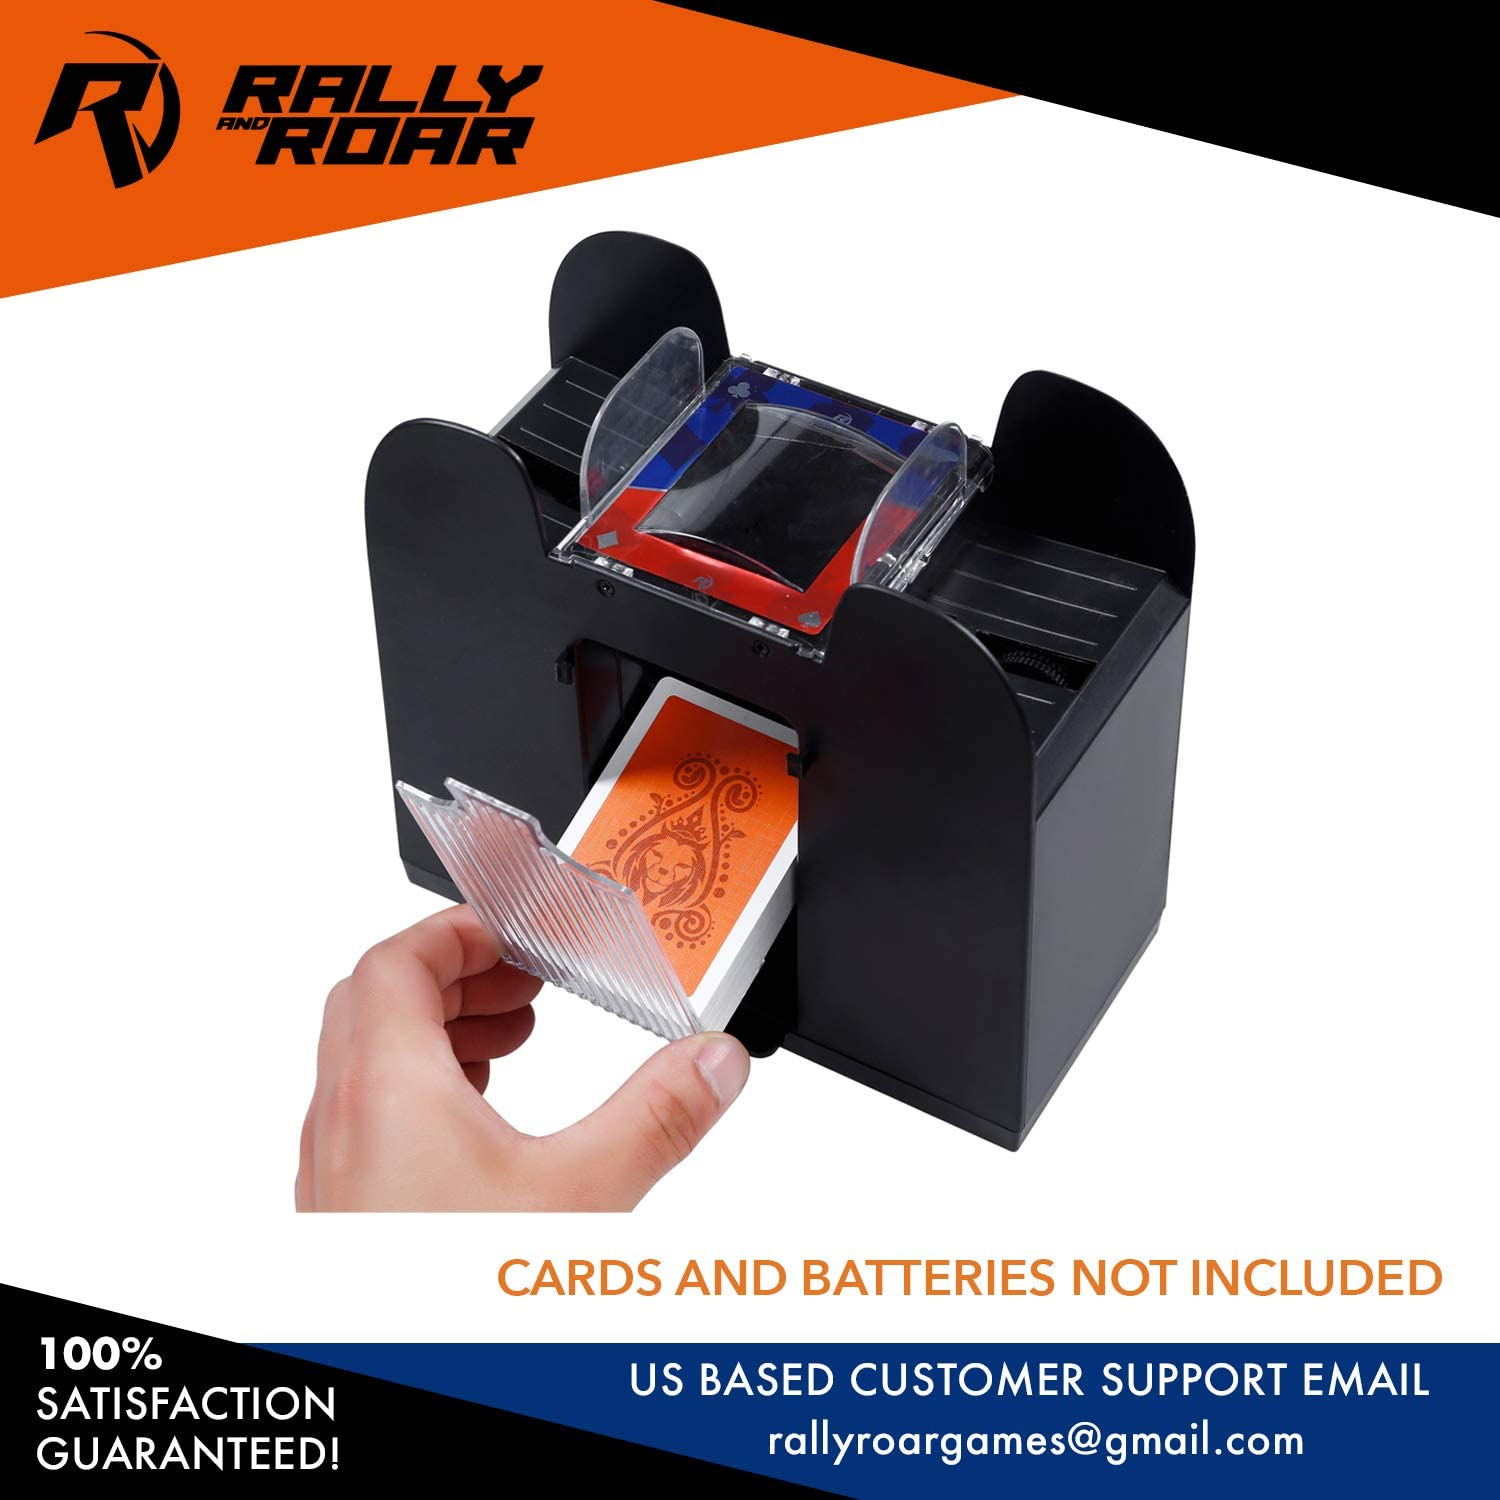 Holds up to 6 Decks Battery Operated Professional Cards Shuffling Machine Portable Casino Card Shuffler Shuffles Quickly Premium Automatic Card Shuffler by Rally and Roar Fits Standard Size